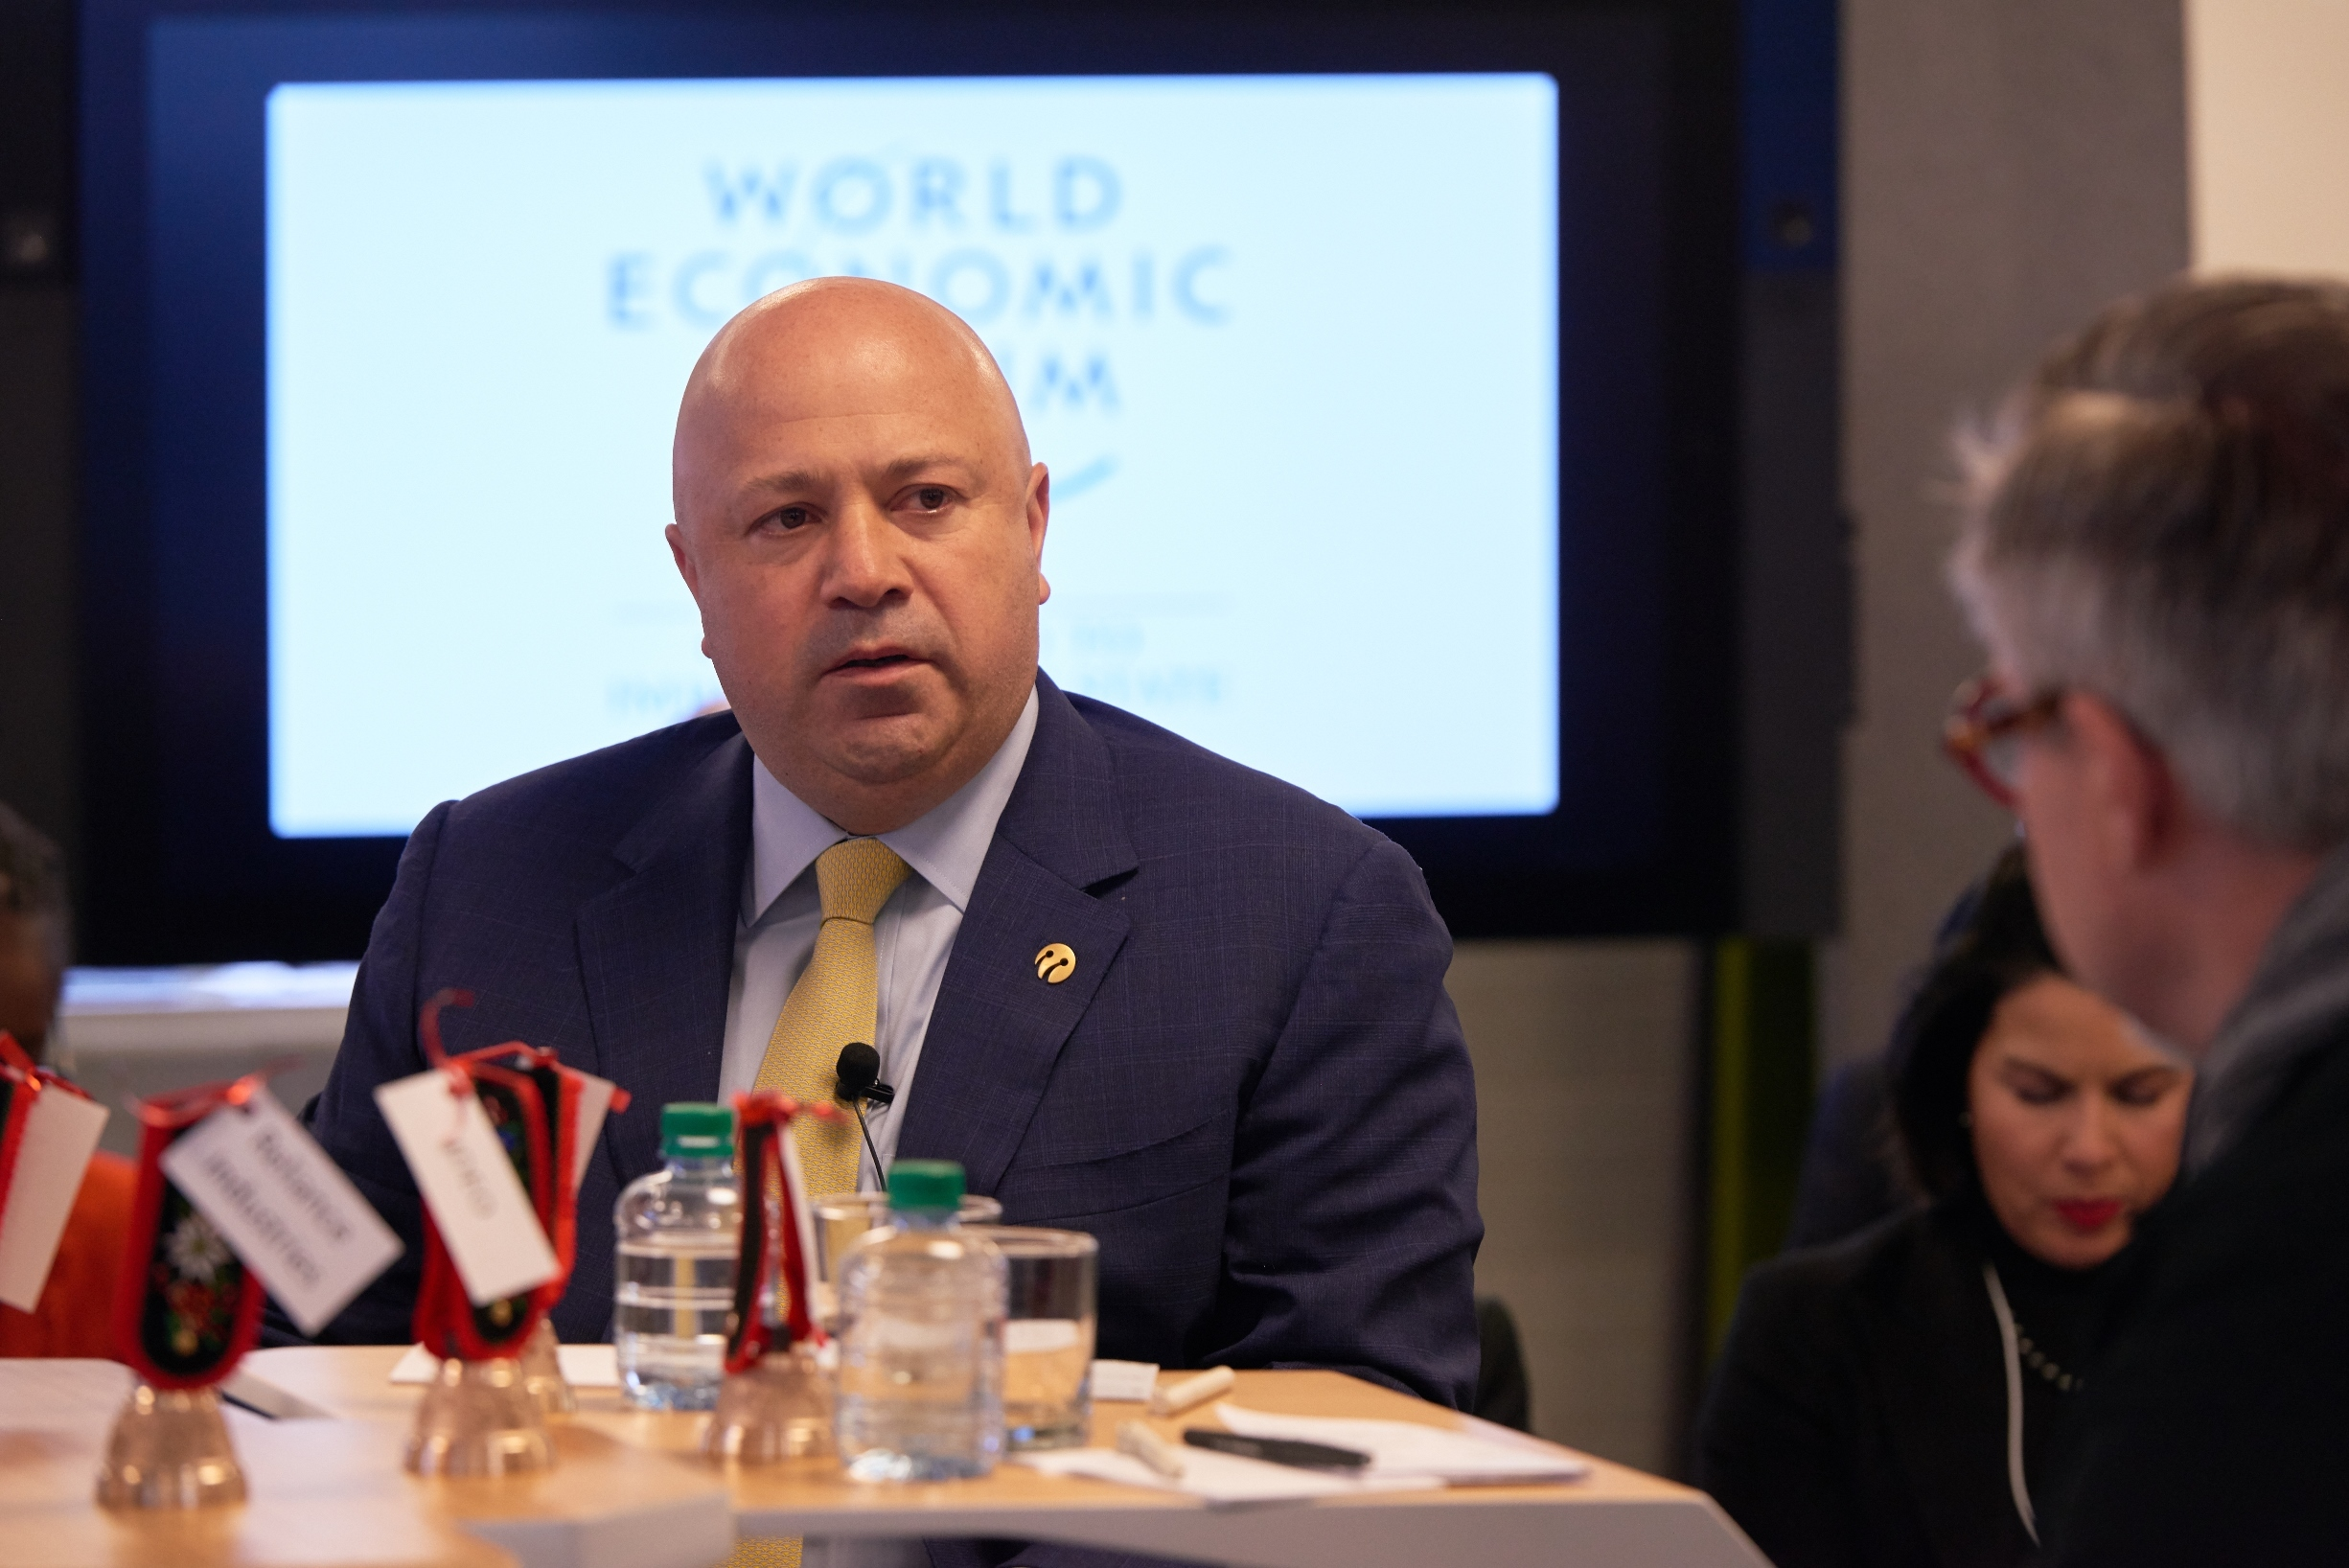 Turkcell CEO Kaan Terzioglu at the World Economic Forum's Center for Fourth Industrial Revolution (Photo: Business Wire)